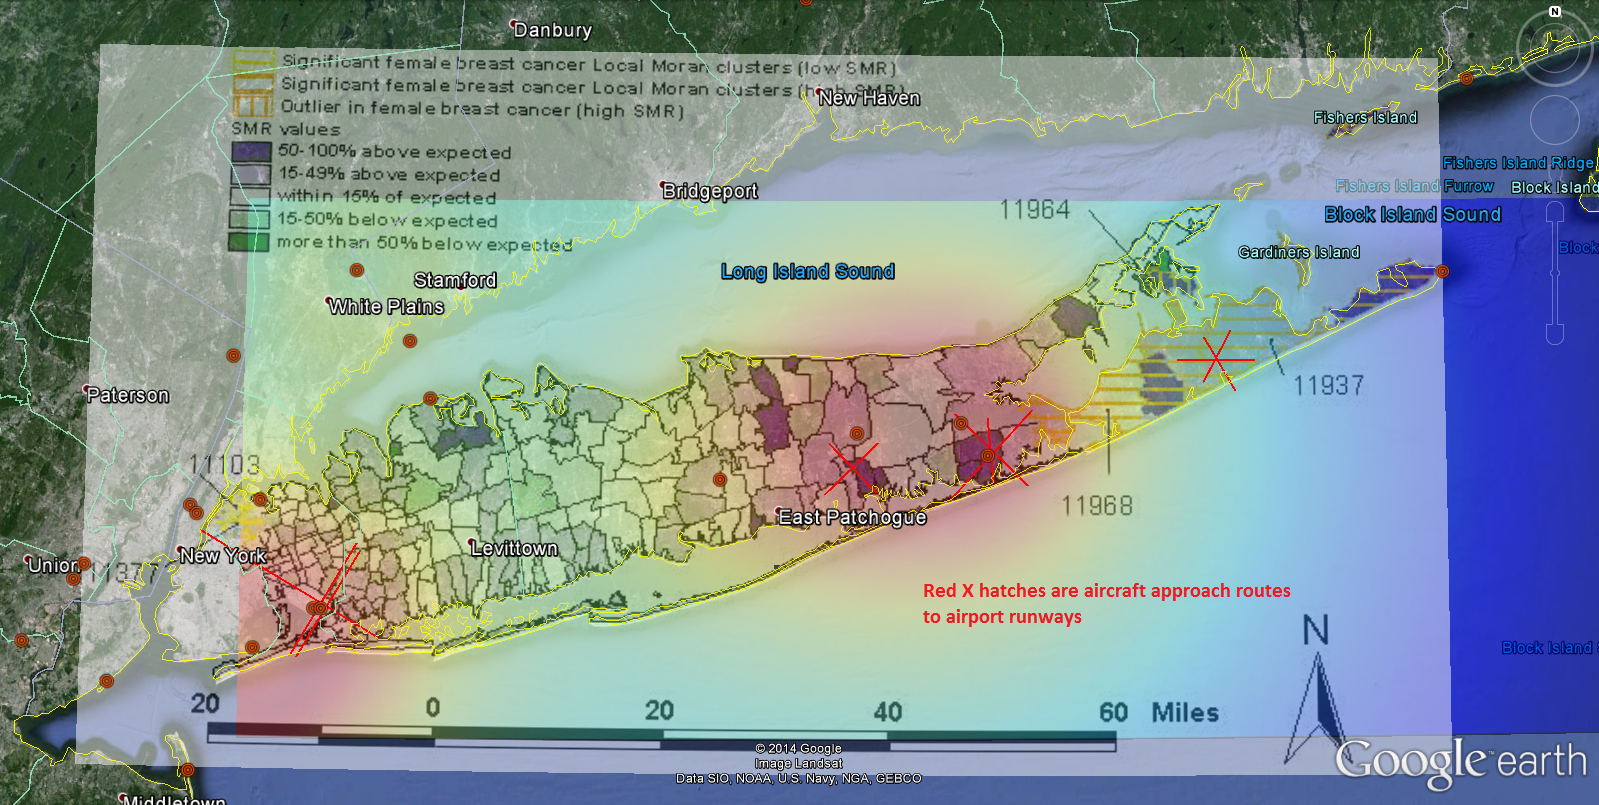 Long Island Cancer Clusters Revisited Dark Matters a Lot